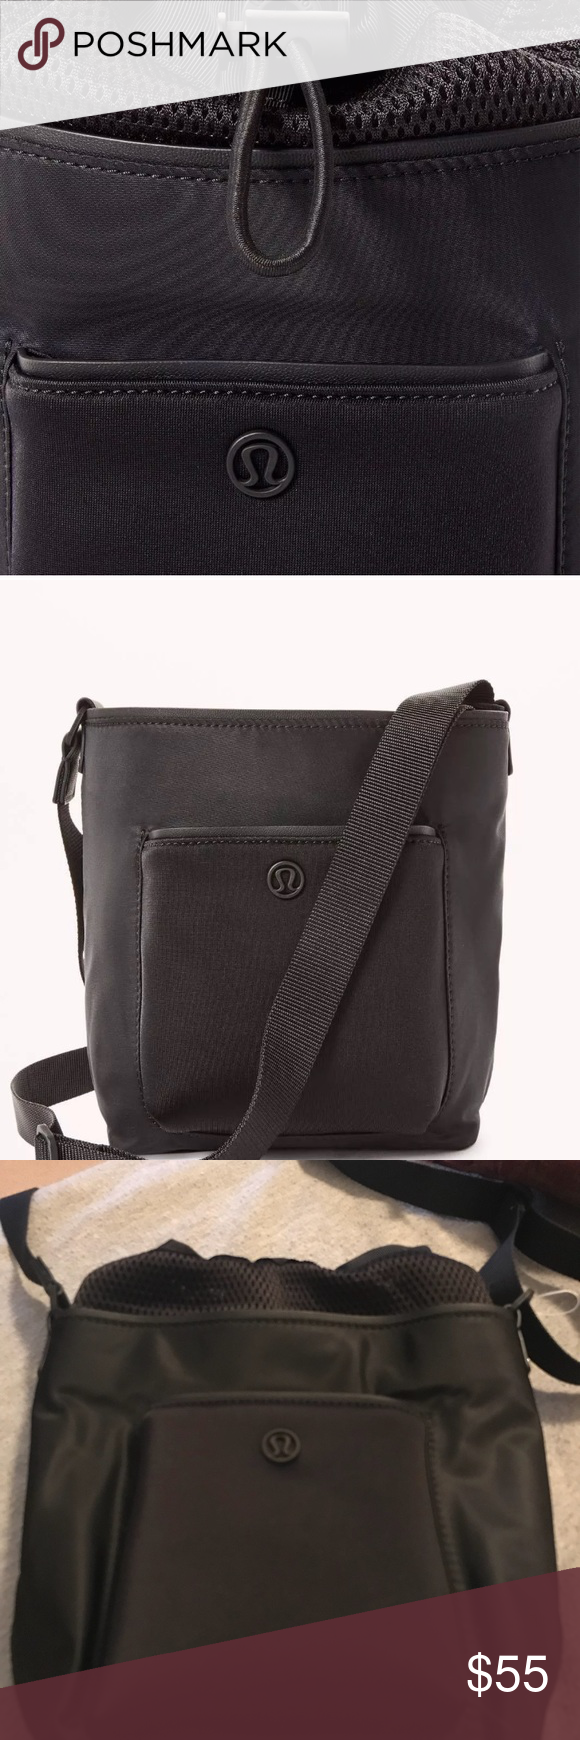 767fa03f Lululemon All Set Mini Bucket, NWT, Black Lululemon All Set Mini Bucket,  Black. New with tags. Perfect for To and from the gym lululemon athletica  Bags